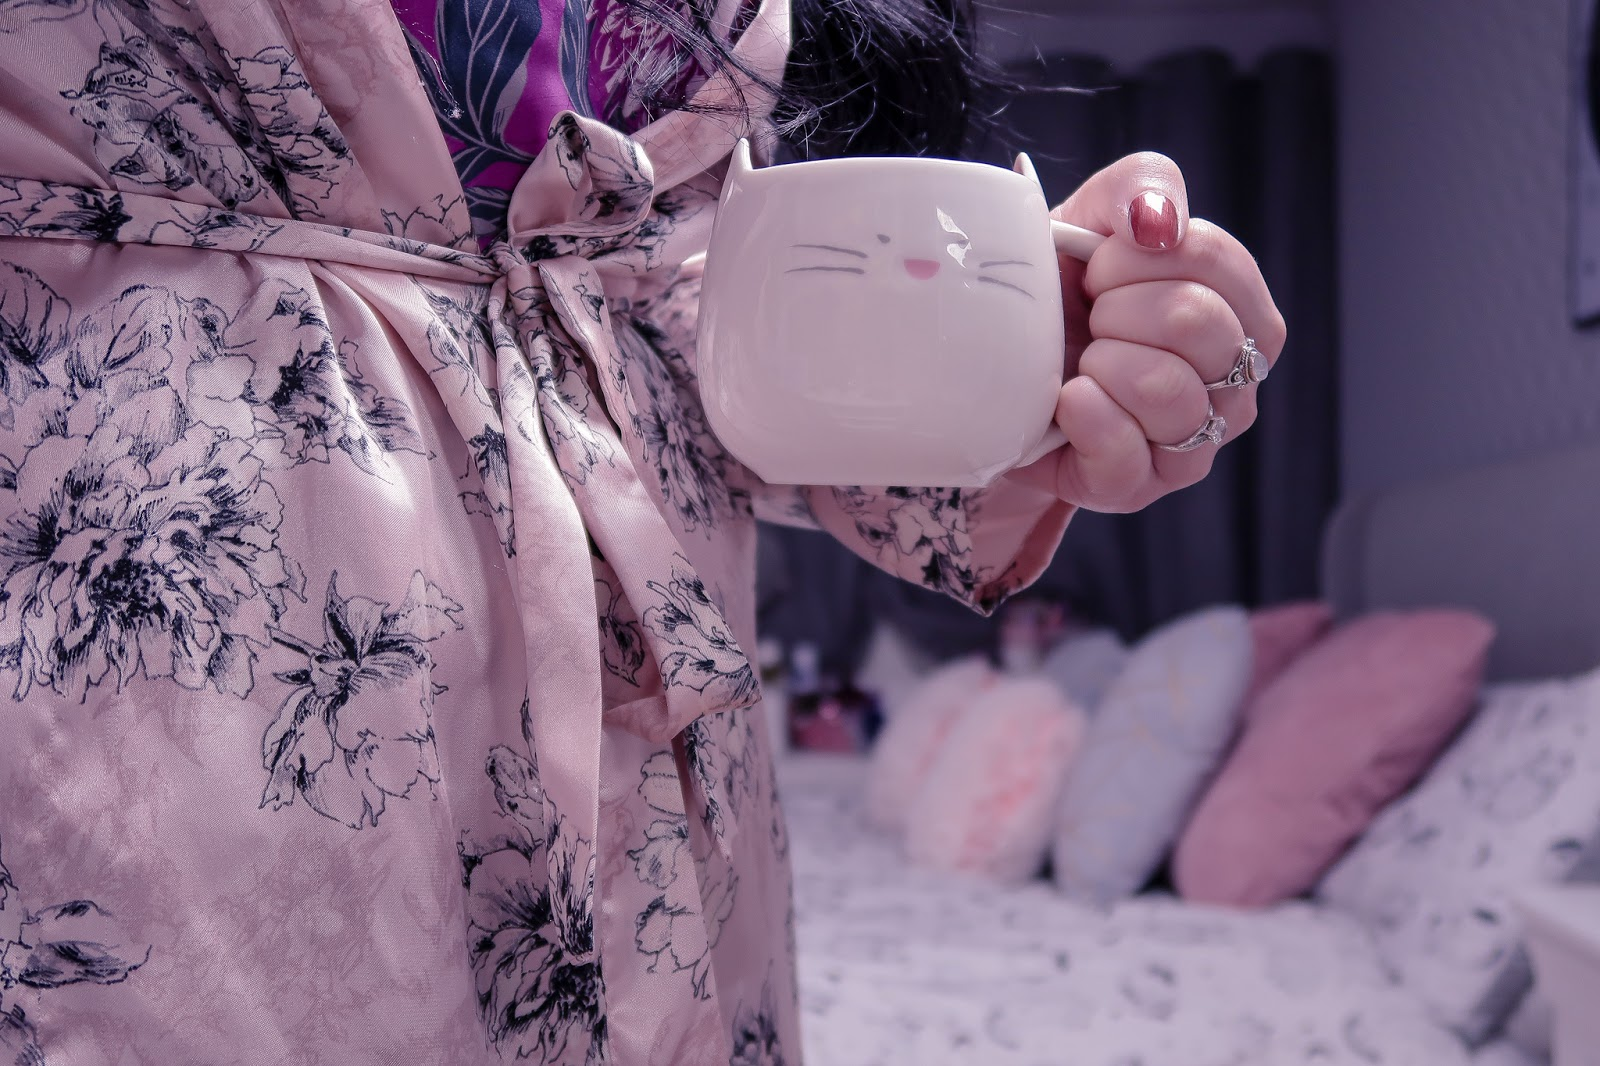 Close up photo of Jordanne from The Life of a Glasgow Girl holding a white cat mug in a pink satin robe